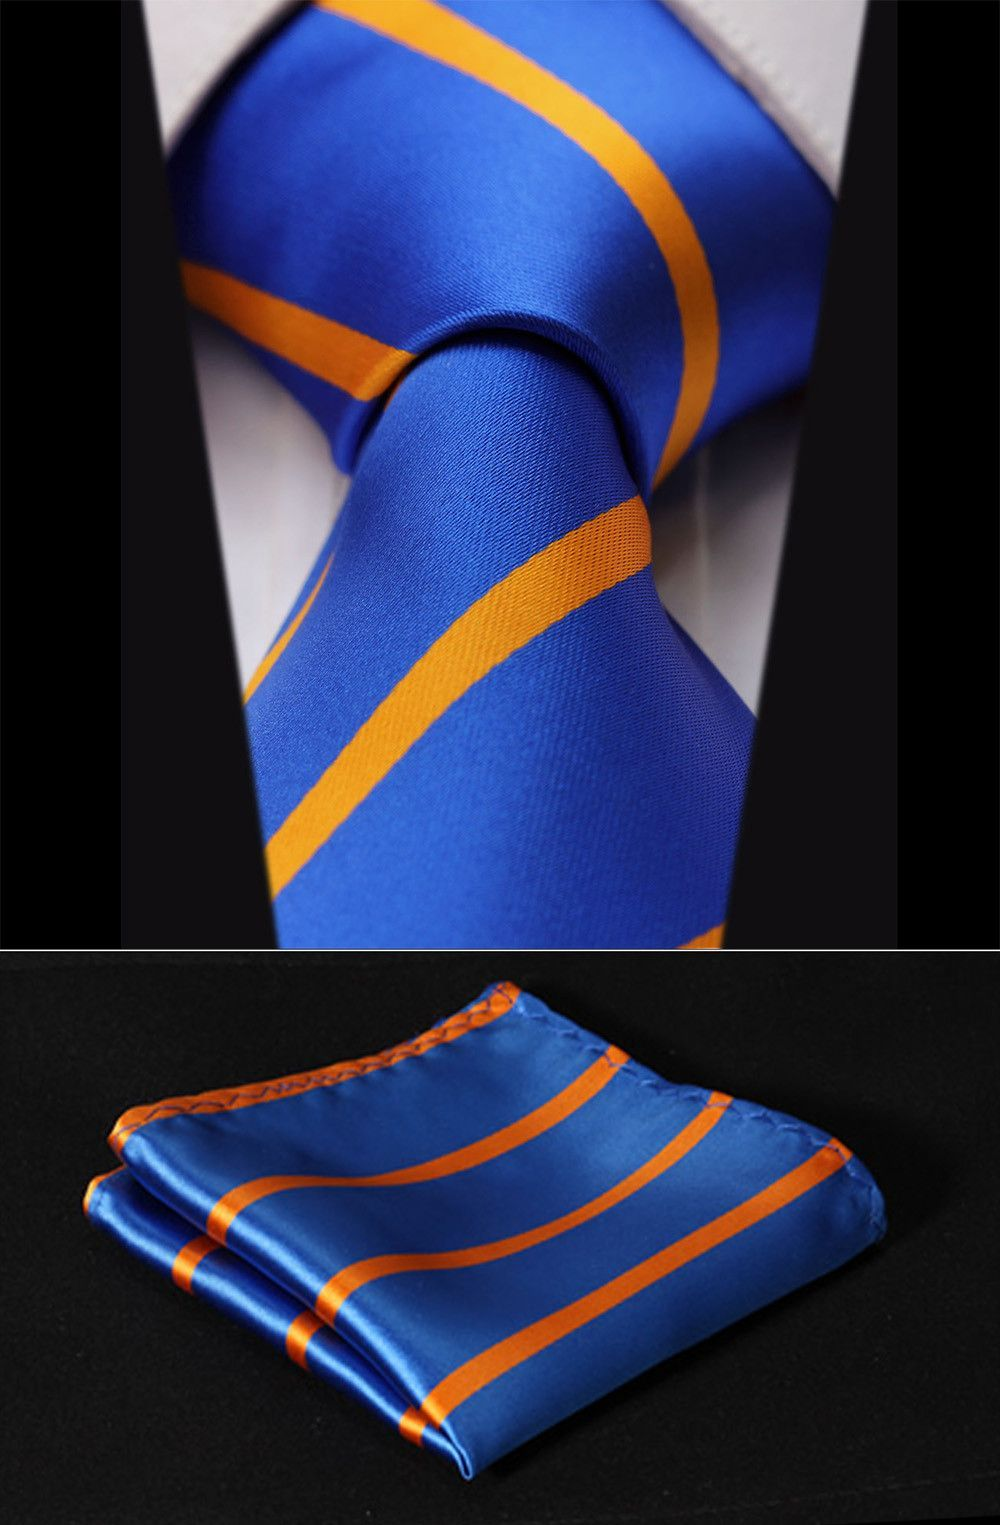 Material: Silk Ties Type: Neck Tie Department Name: Adult Pattern Type: Striped Gender: Men Style: Fashion Size: One Size Item Type: Ties